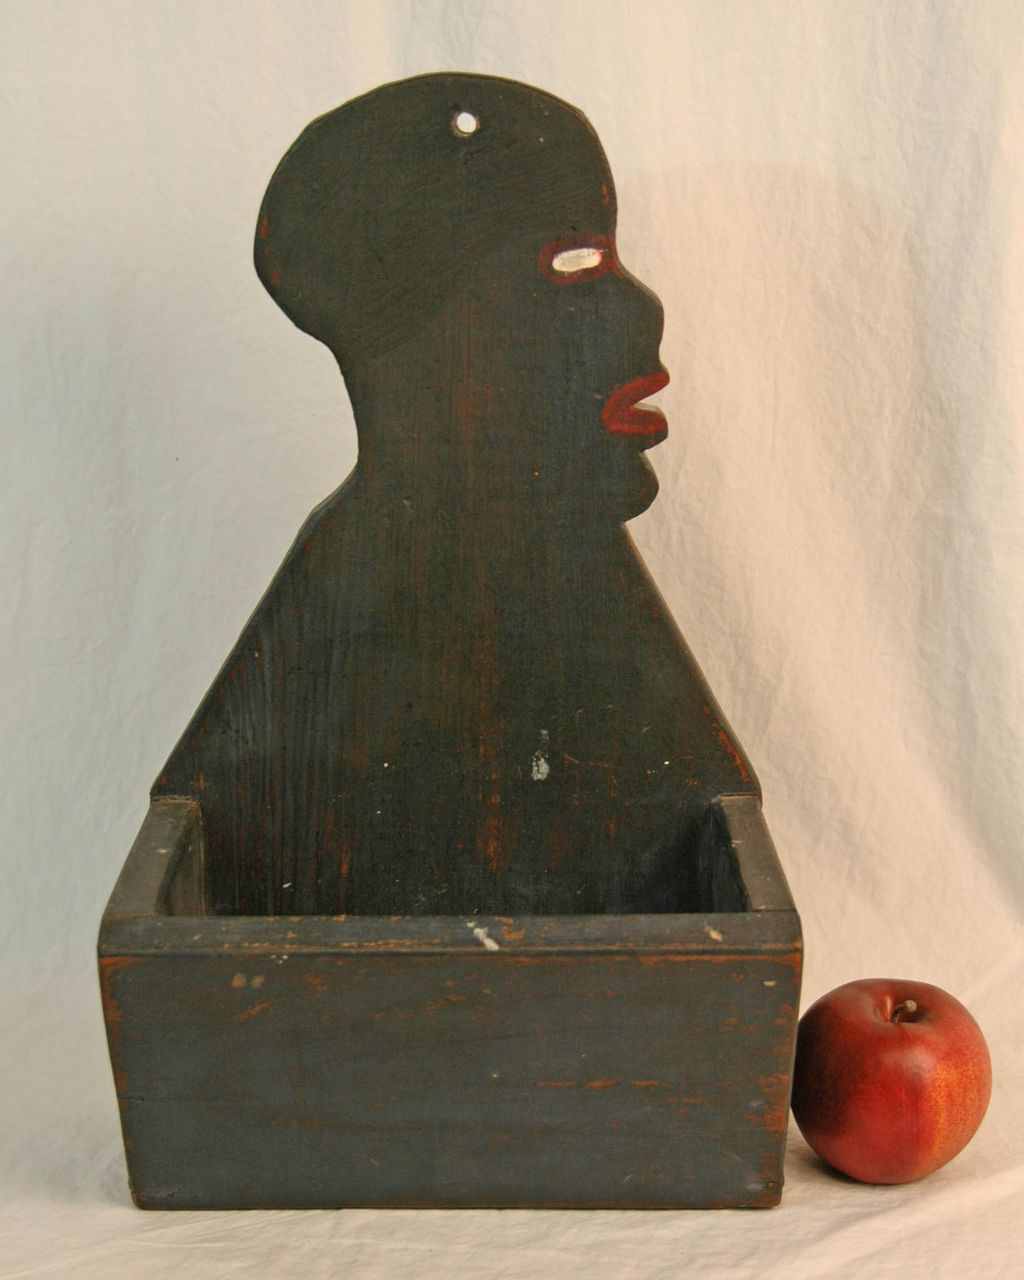 Black Americana Painted Wall Box with a Head Profile